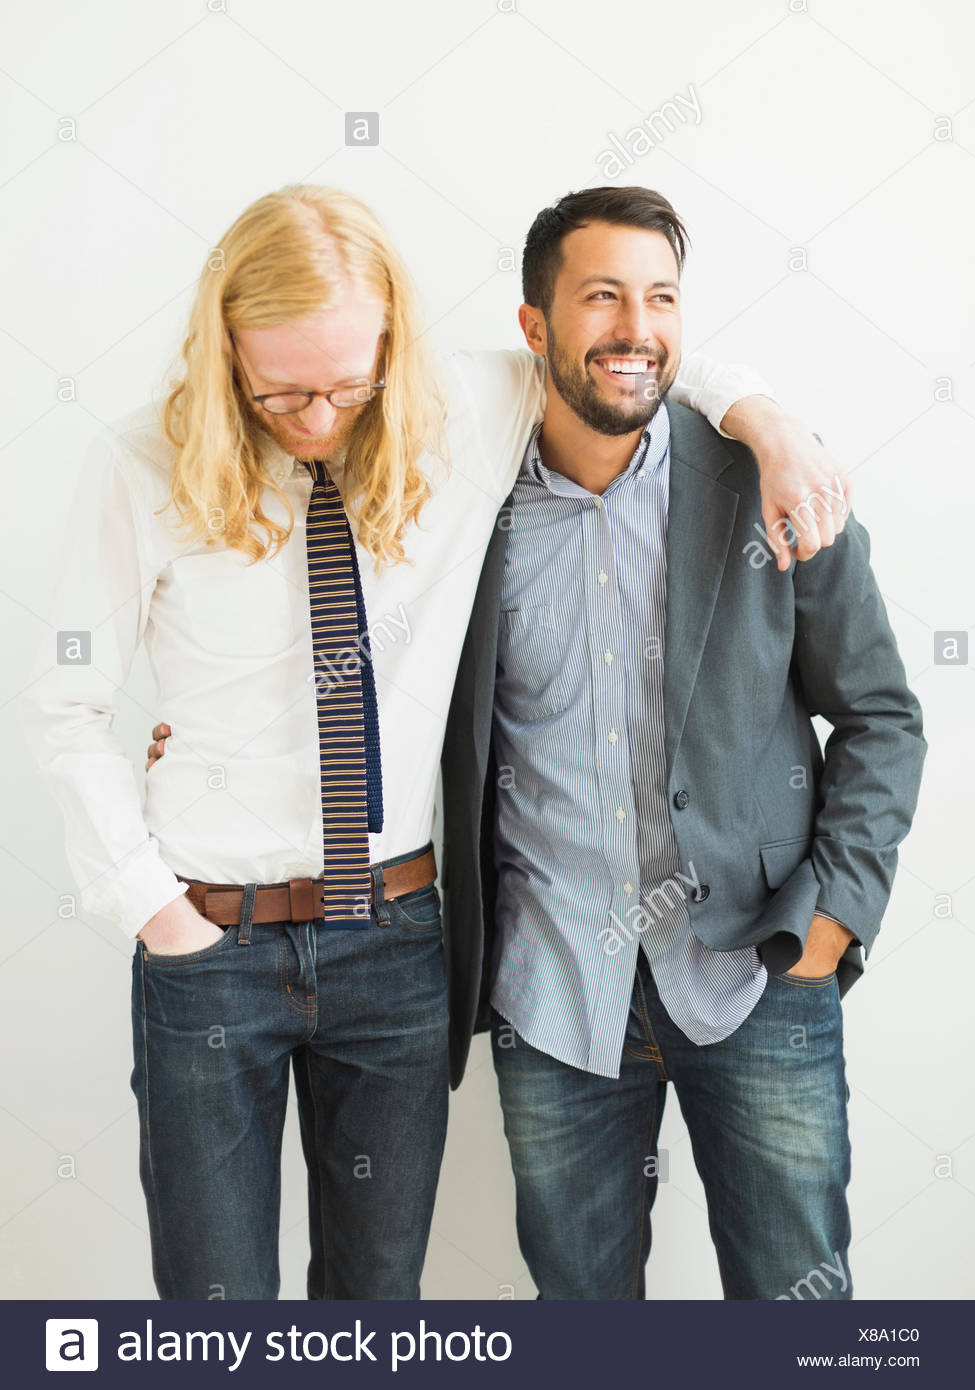 Two smiling friends - Stock Image